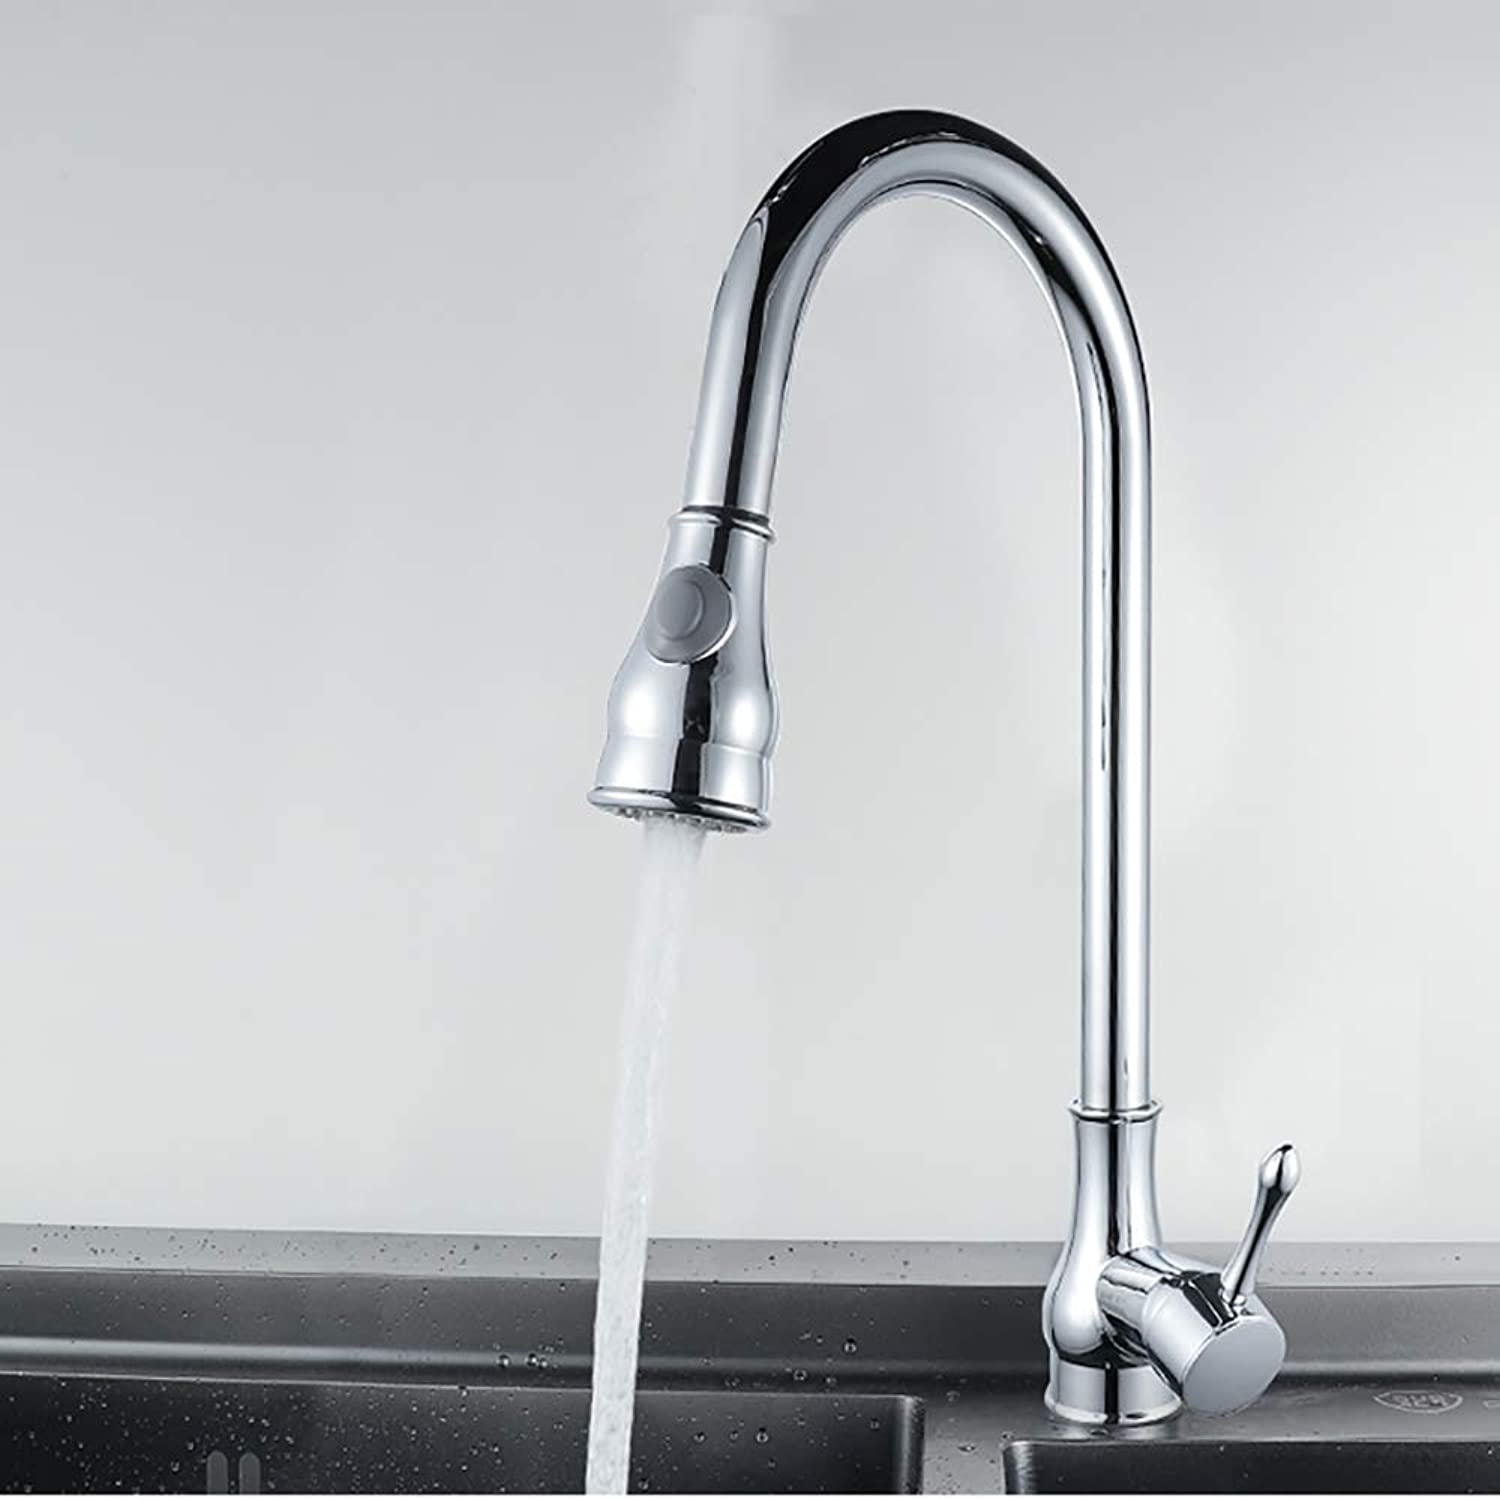 NineDays All-copper kitchen sink pulls hot and cold water taps Kitchen sink pulls hot and cold water taps